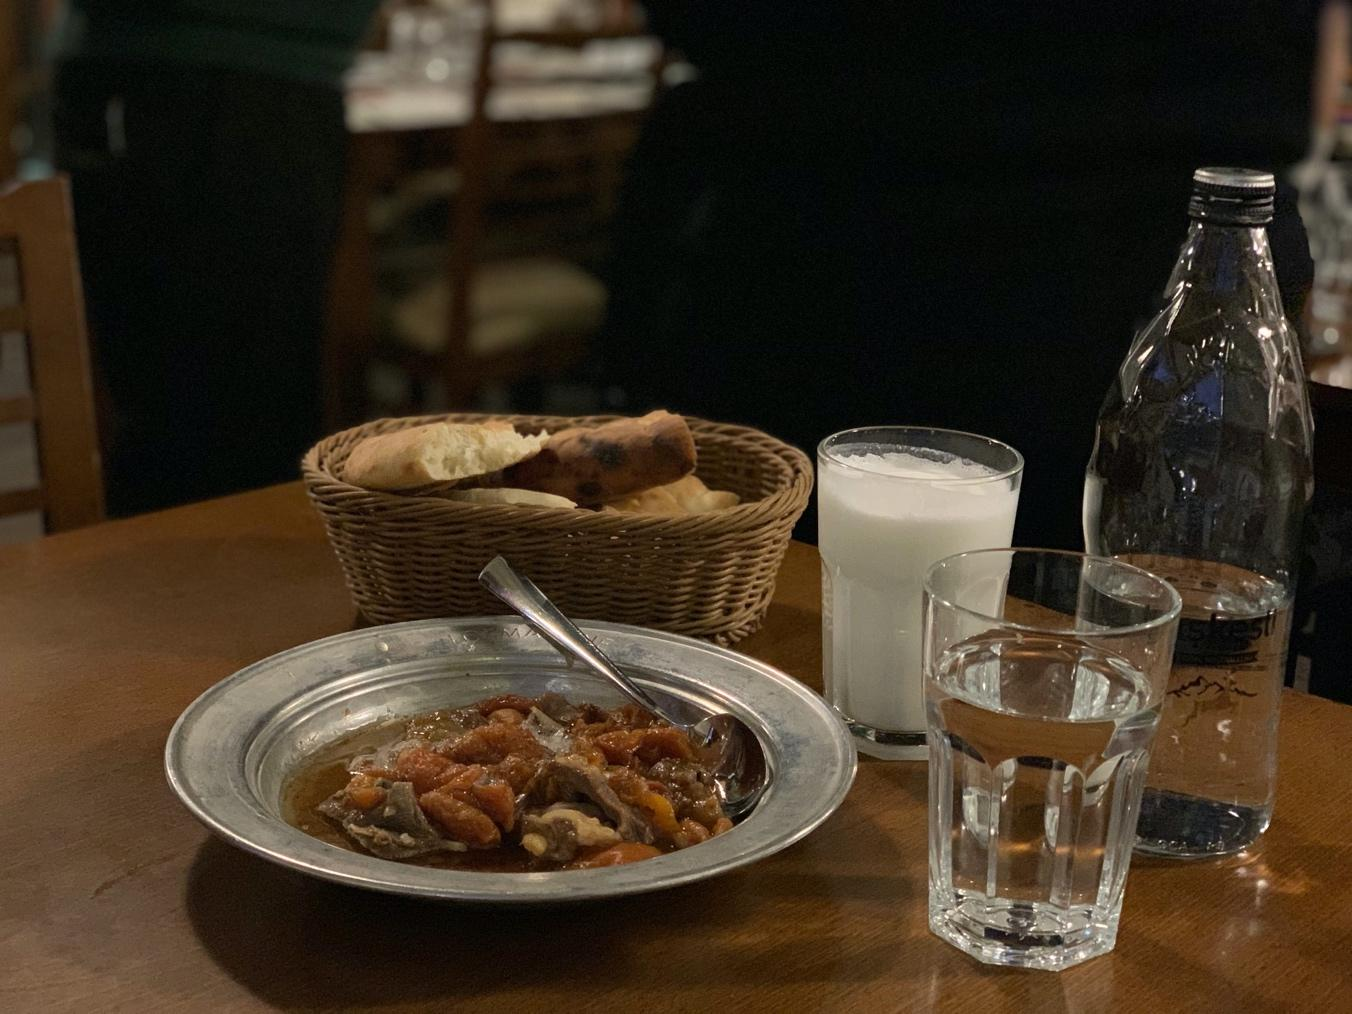 A plate of food and a glass of beer on a table  Description automatically generated